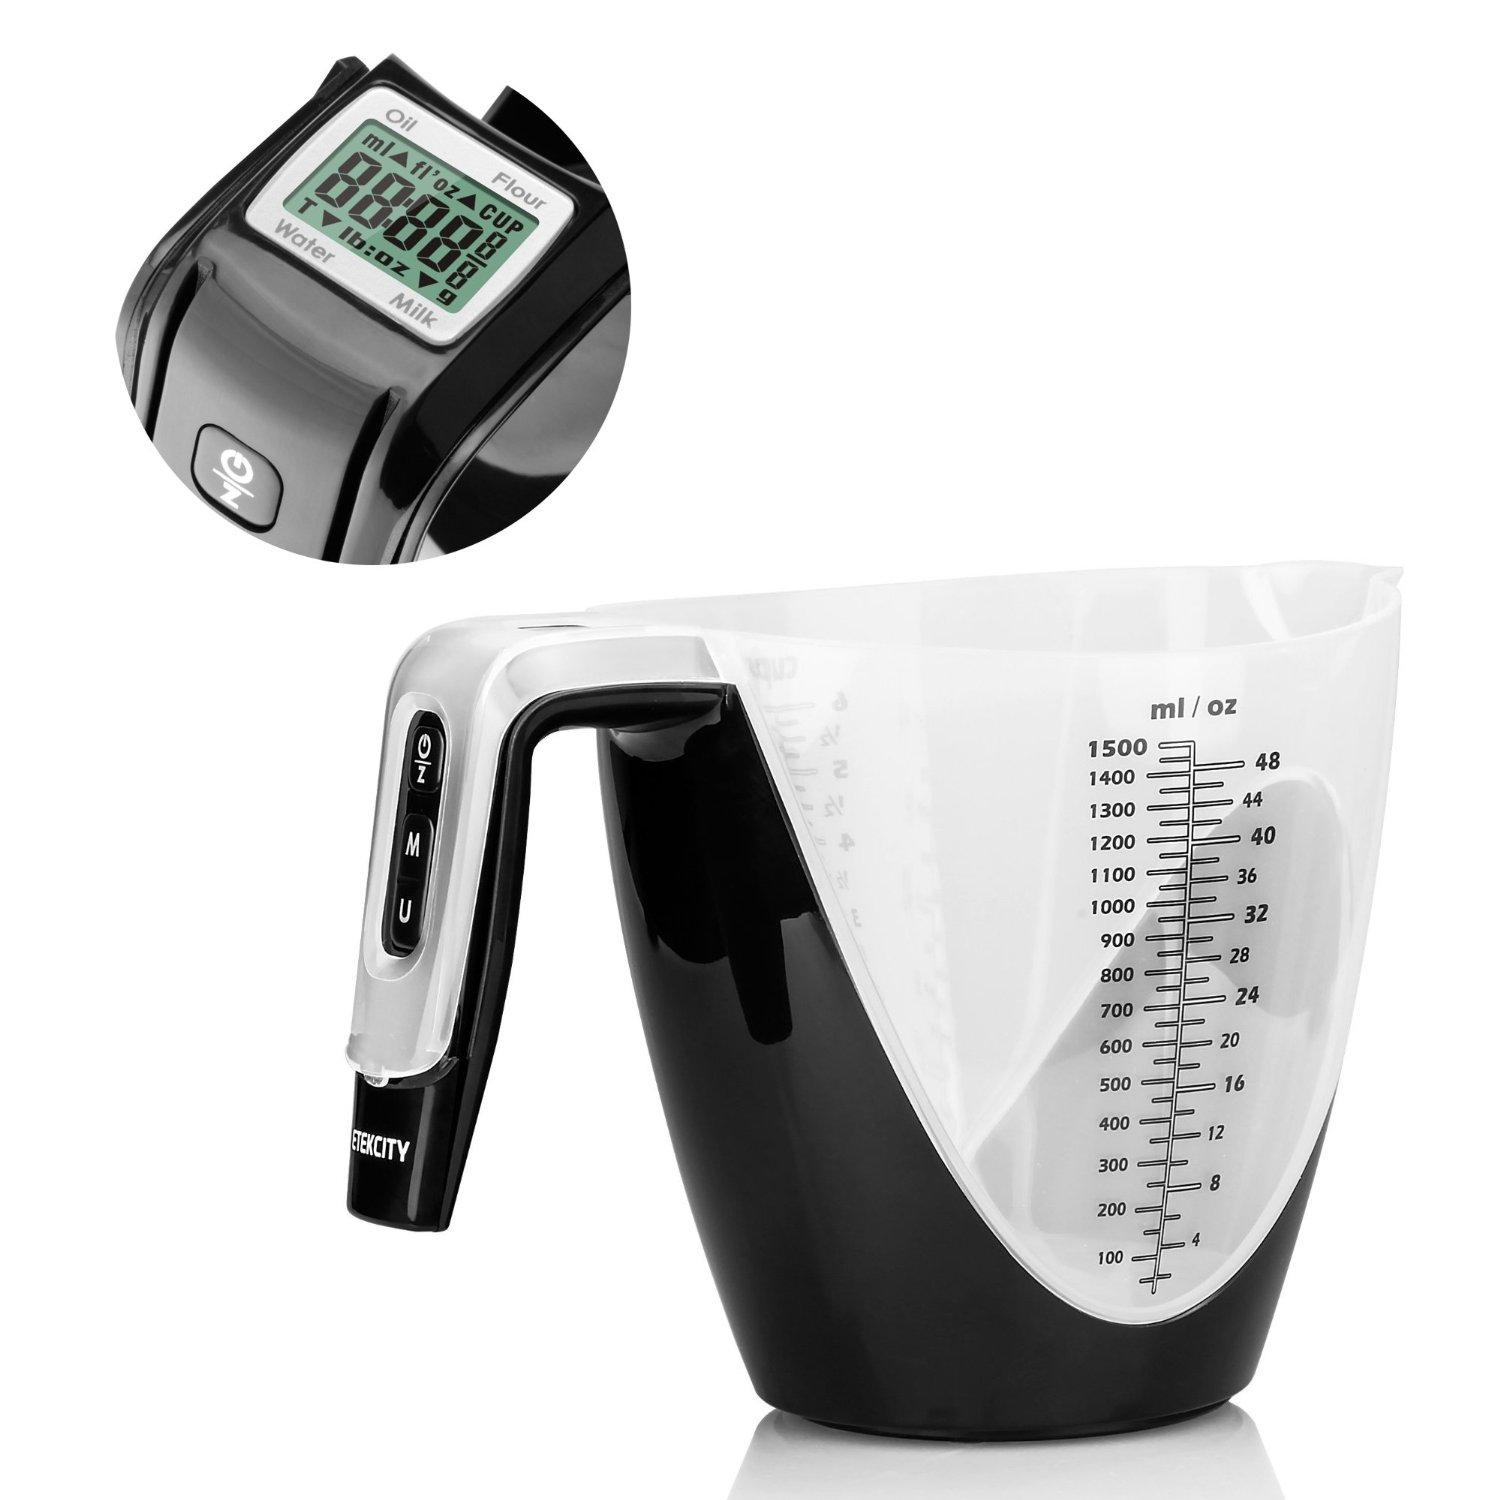 Etekcity® 1/8oz High Accuracy Handy 11lb/5kg Digital Multifunction Kitchen Food/Flour/Milk/Oil/Water Measuring Cup/Scale